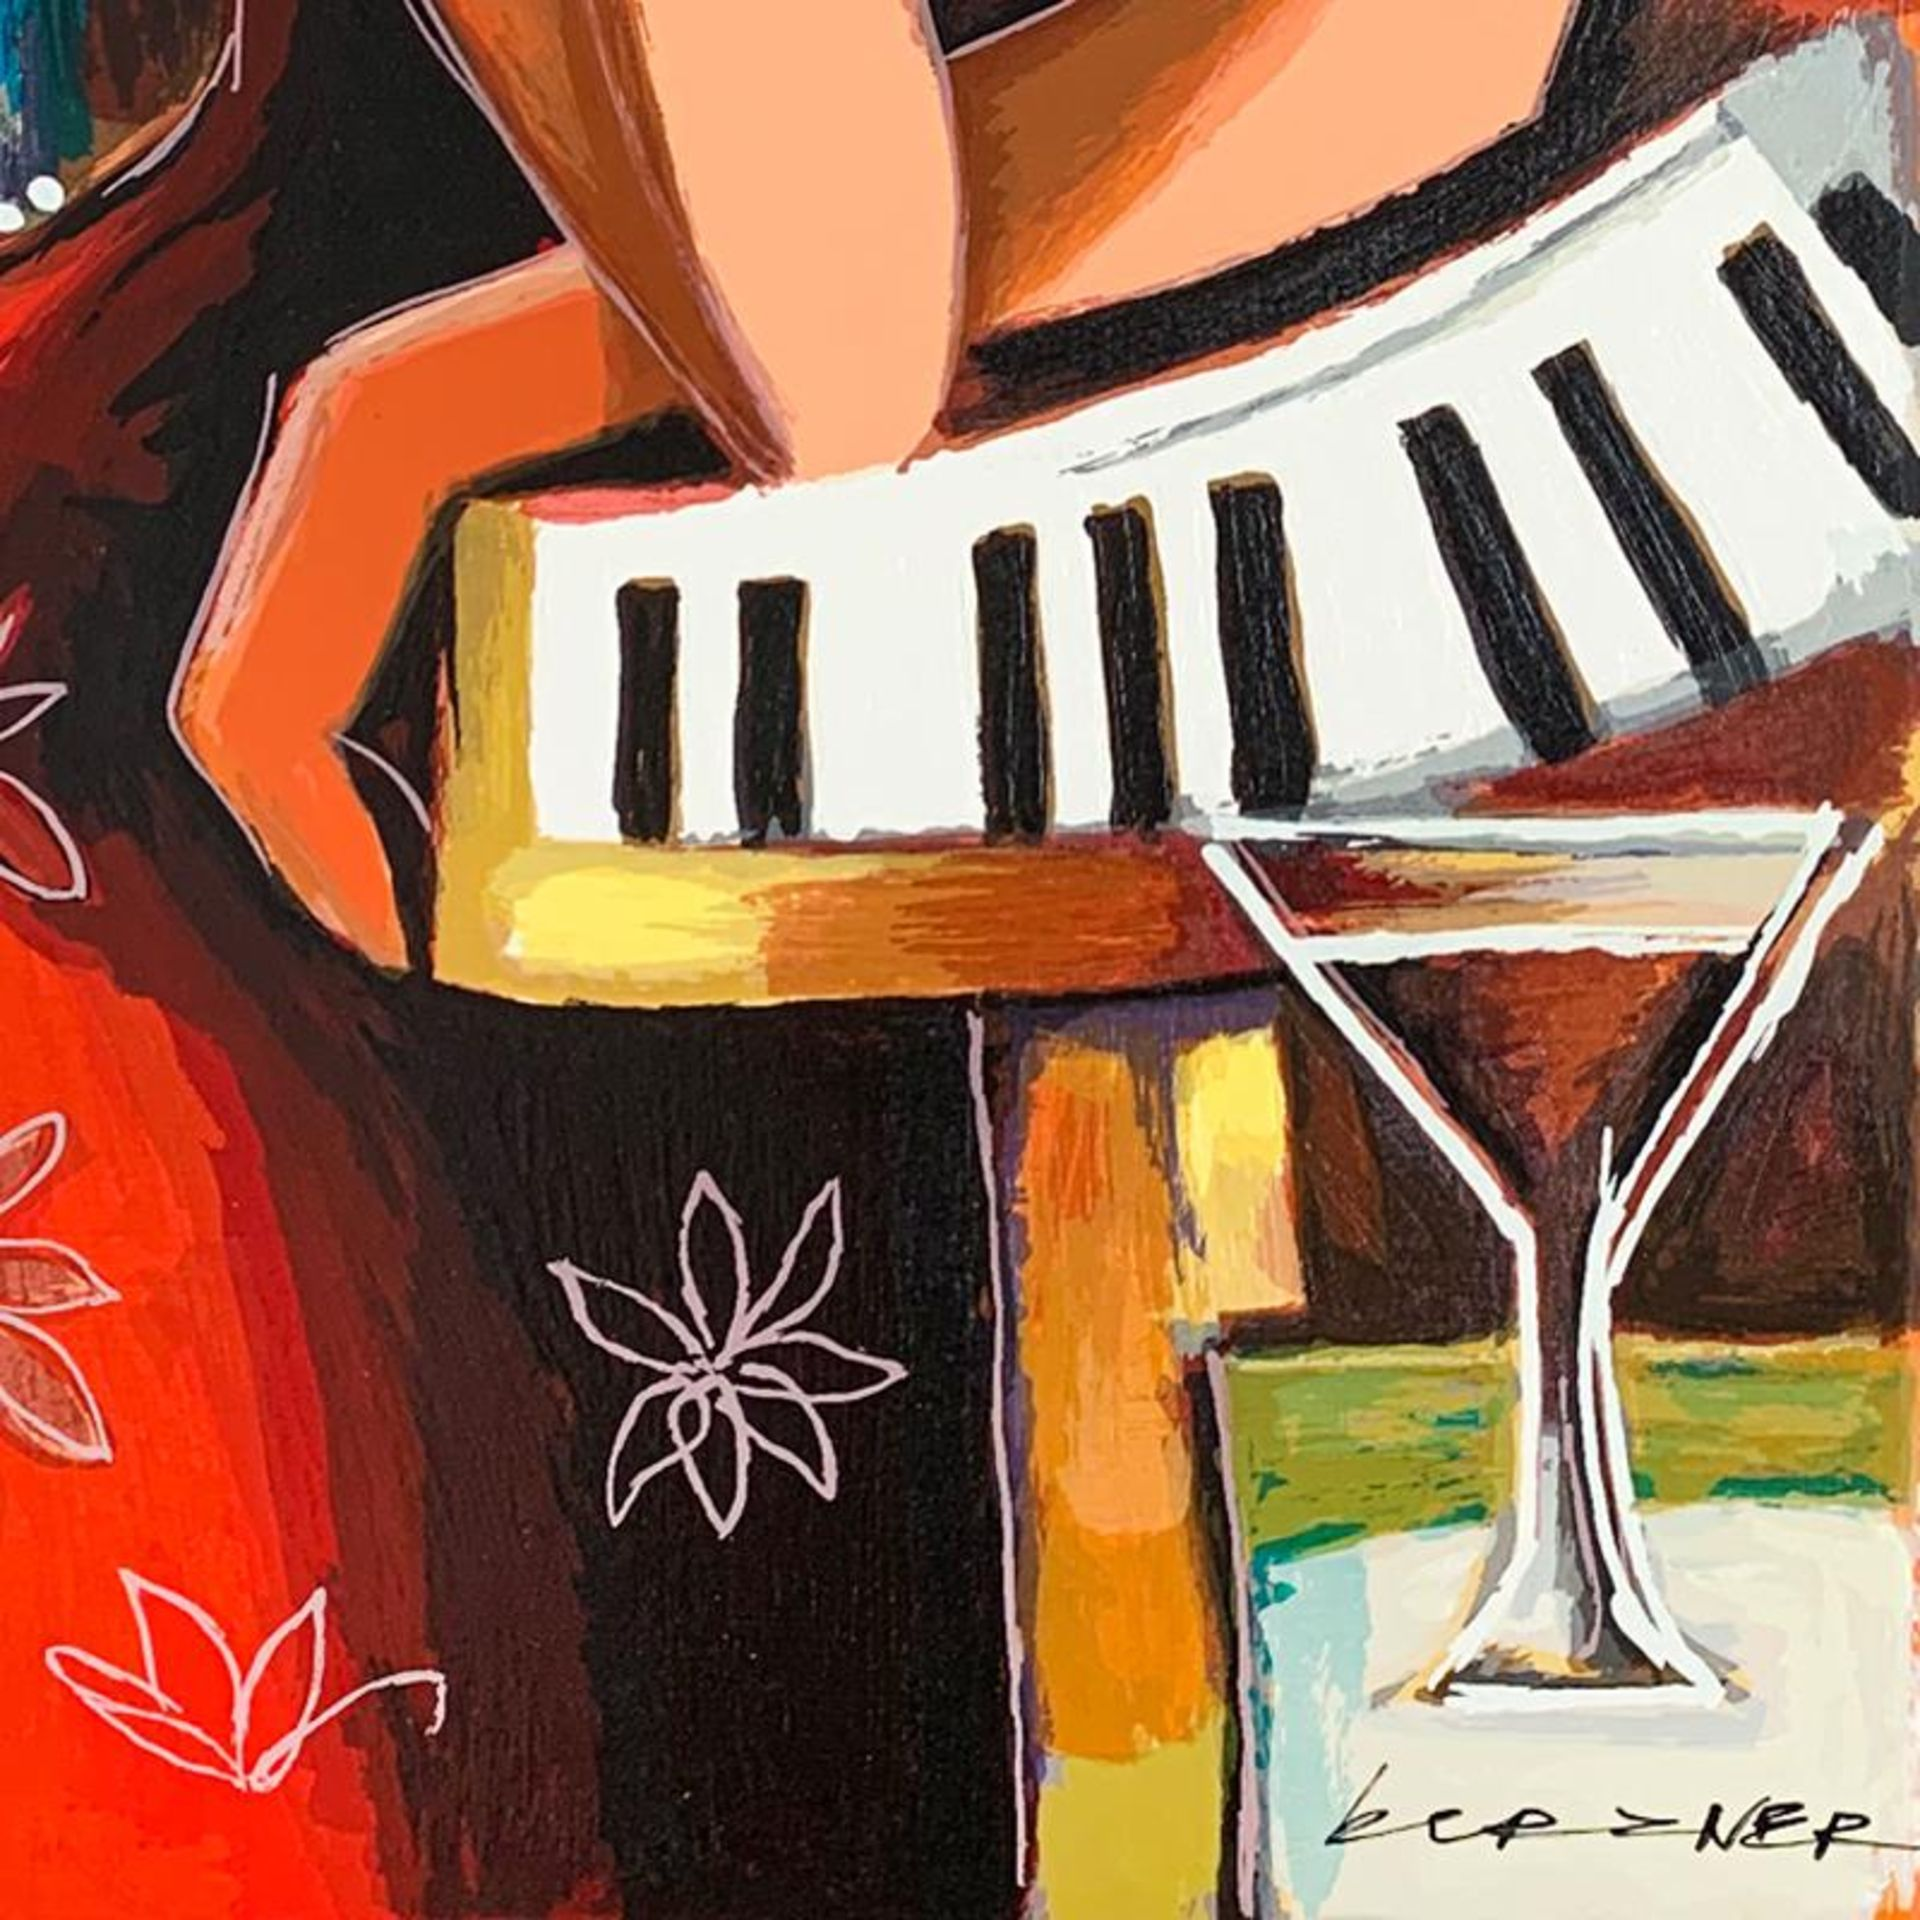 The Pianist by Kerzner, Michael - Image 2 of 2